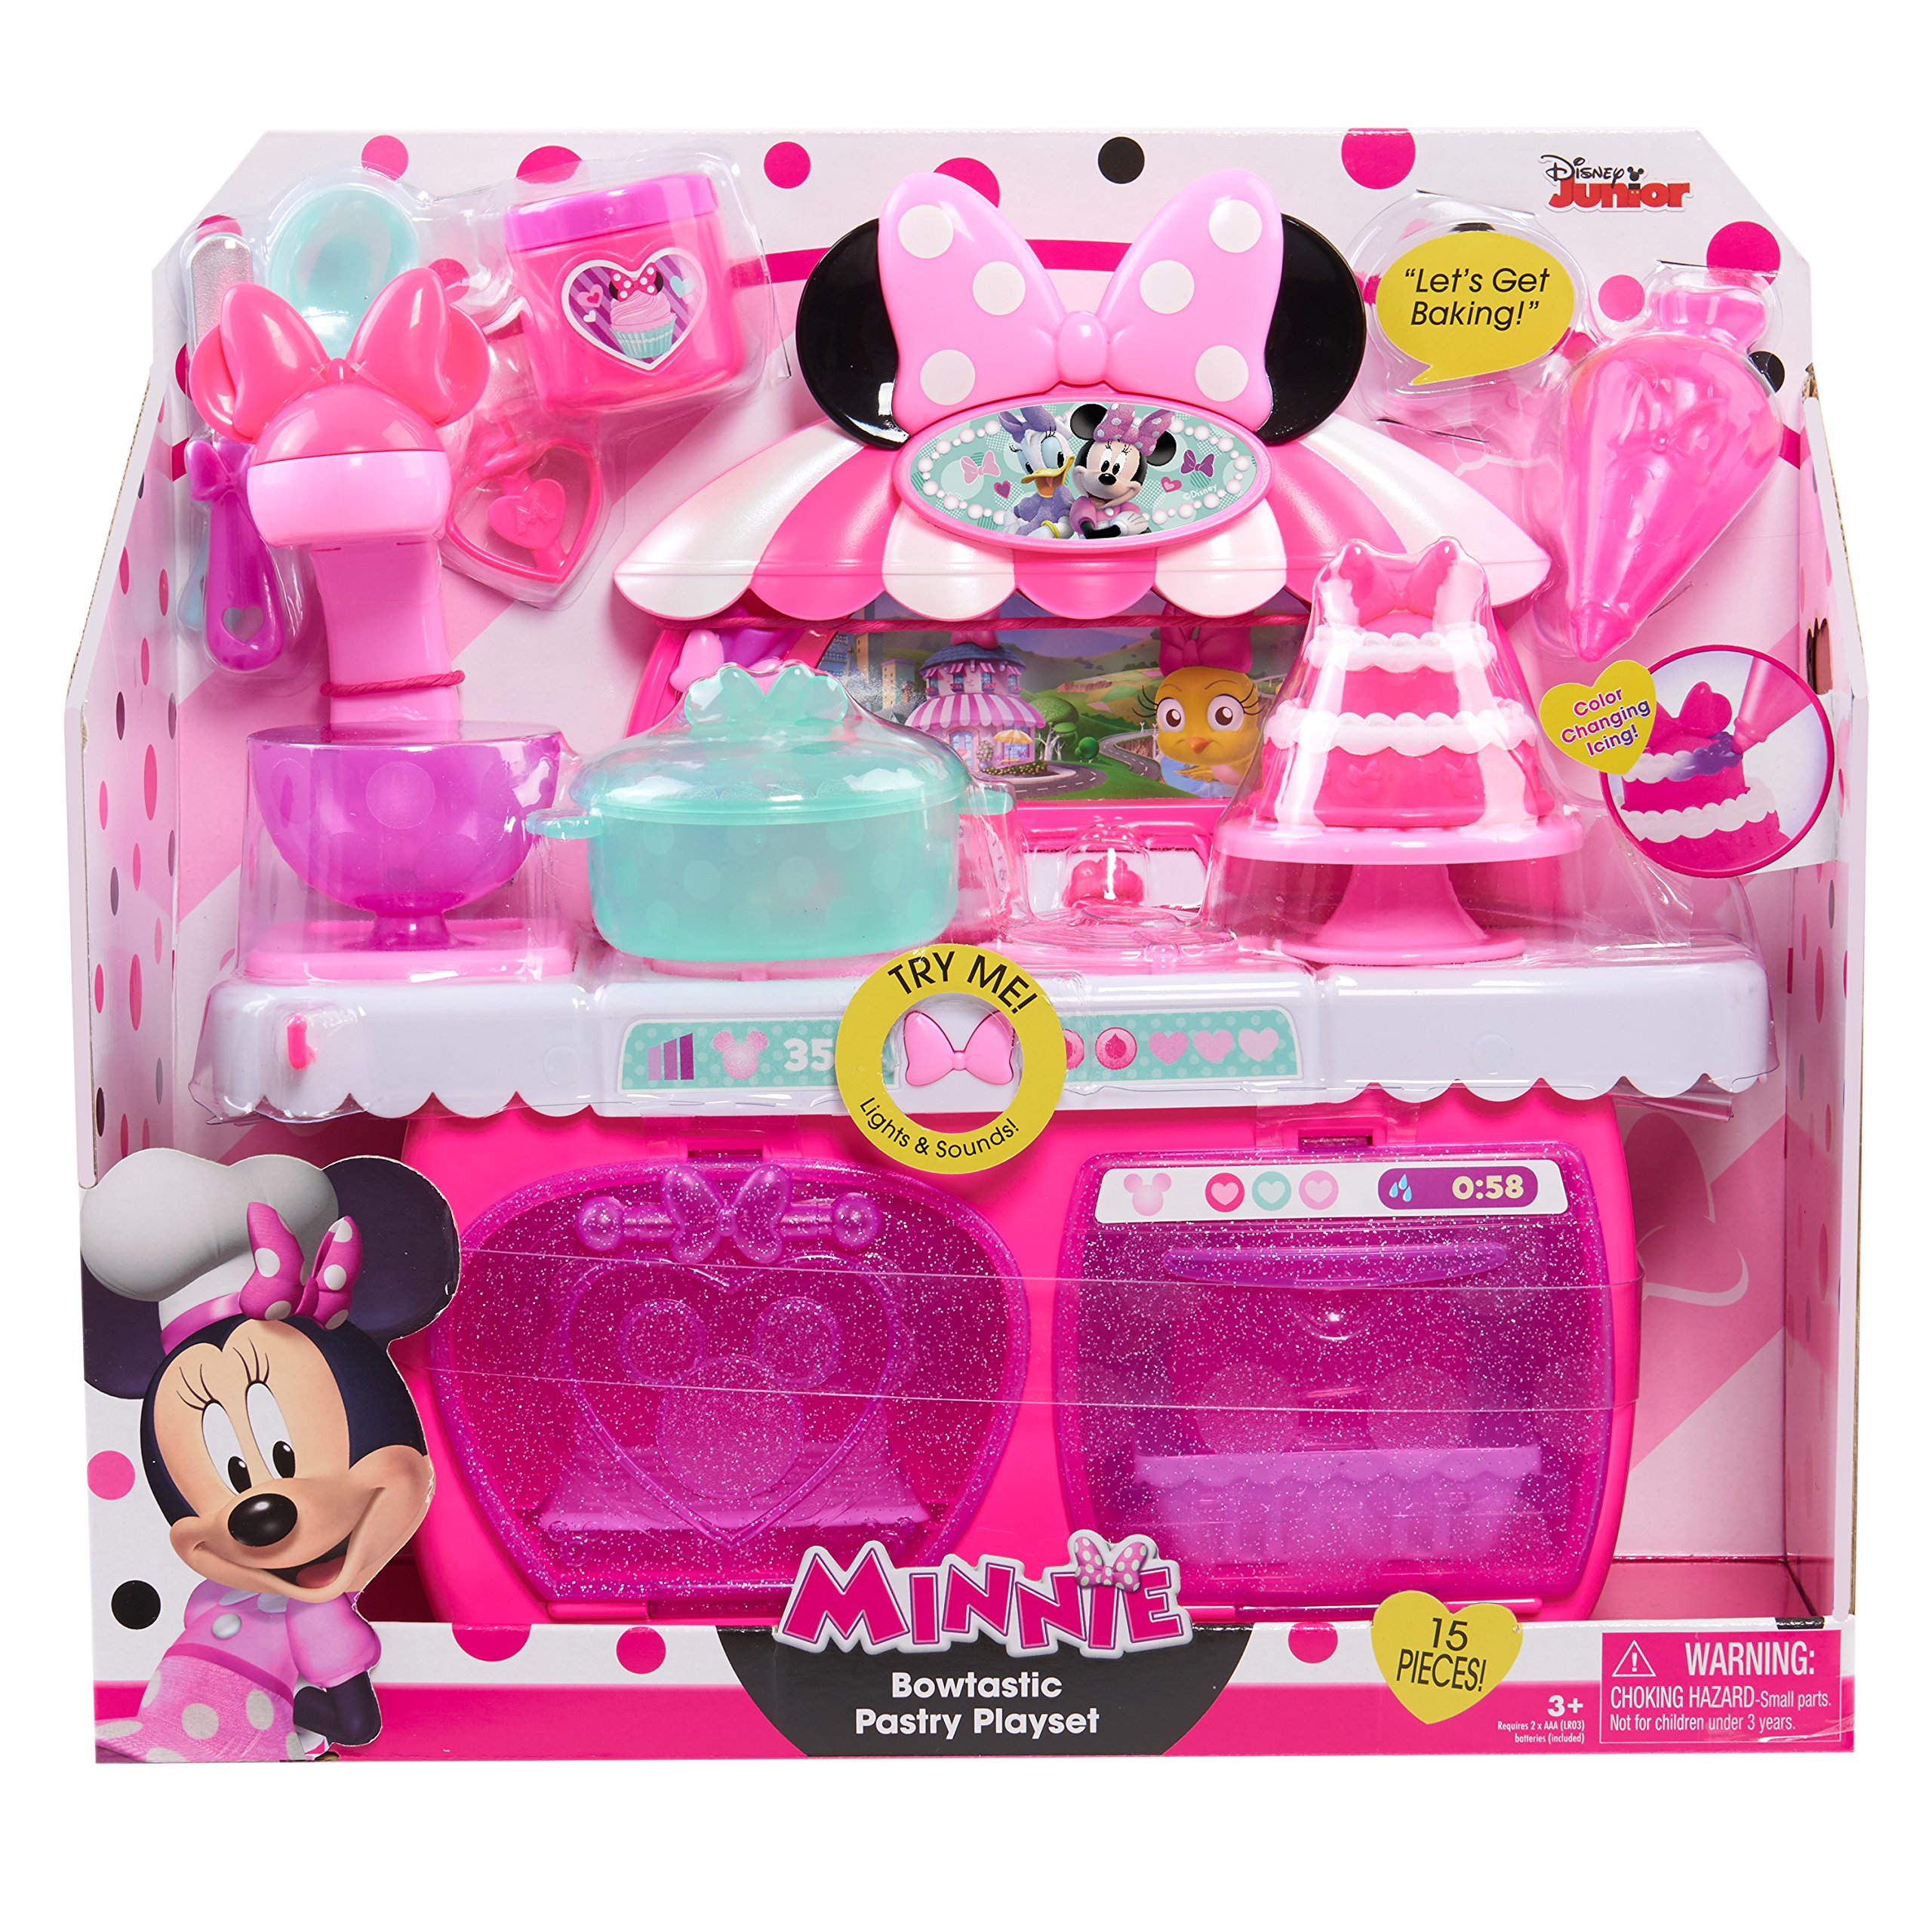 Minnie's Happy Helpers Bowtastic Pastry Playset, Pink by Minnie